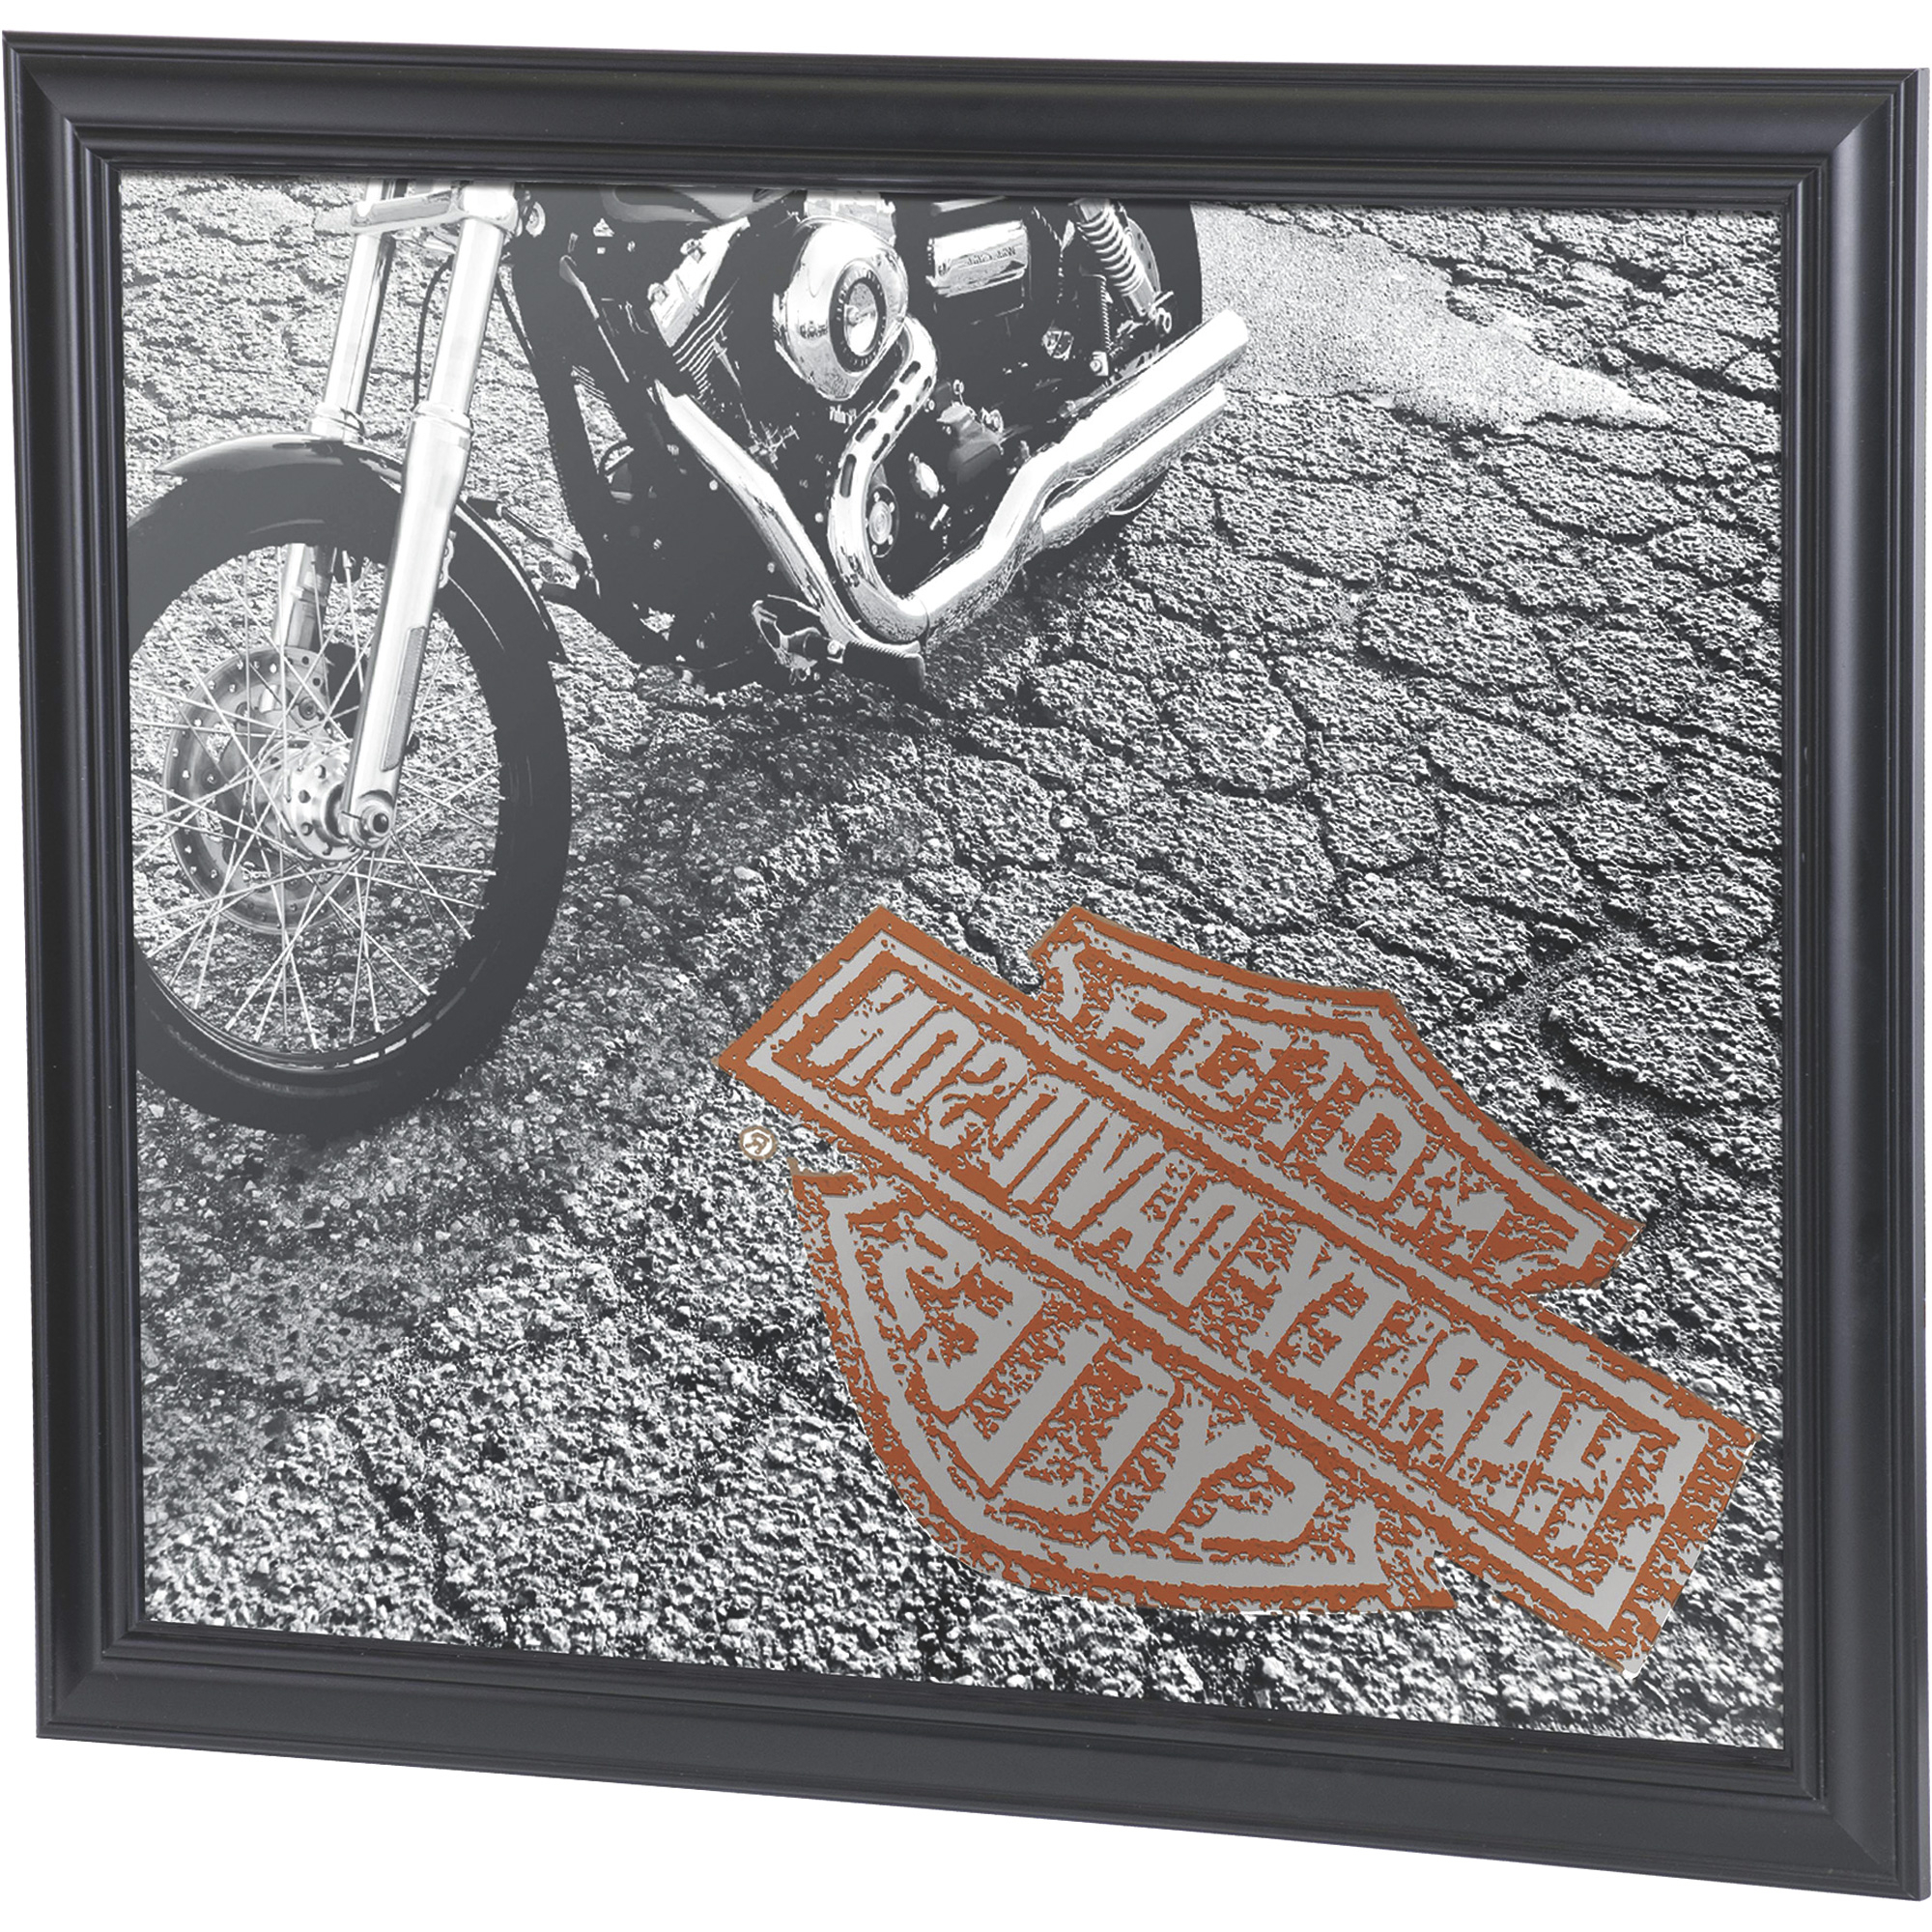 Harley Davidson Asphalt Wall Mirror With Regard To Famous Harley Davidson Wall Mirrors (View 2 of 20)